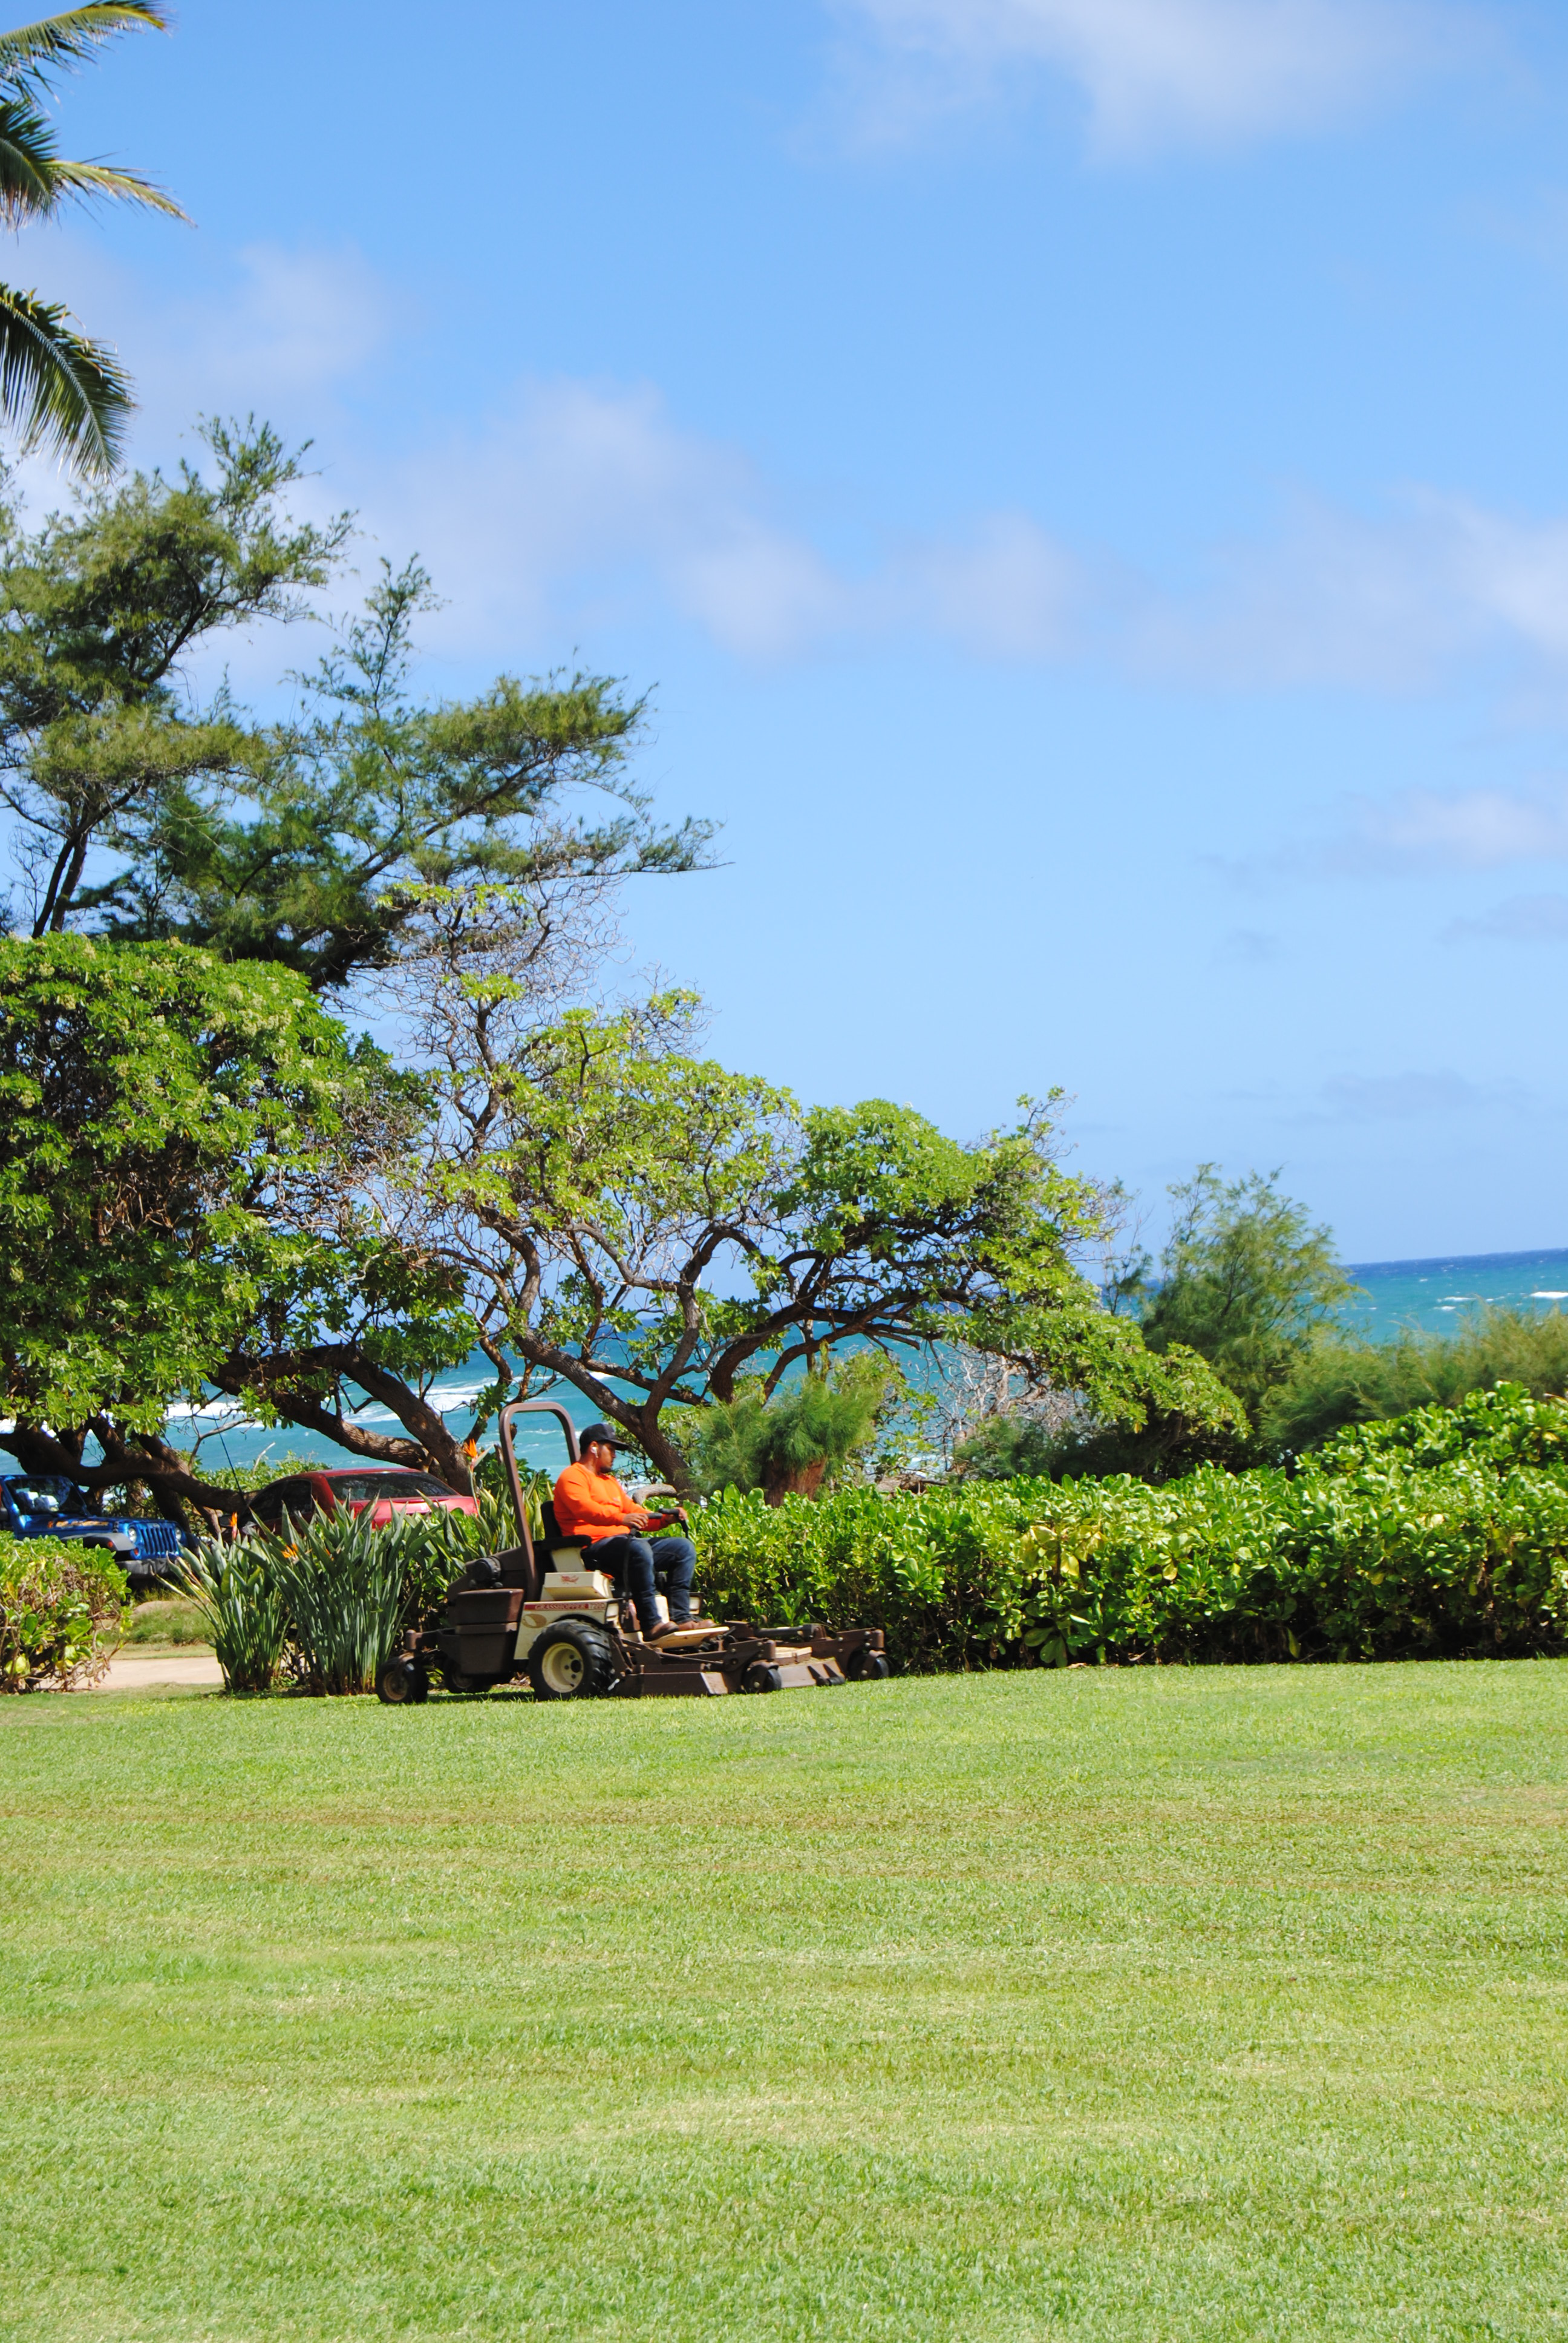 The business relationship between Kaha Lani Resort and No Ka Oi kicked off in August 2014.